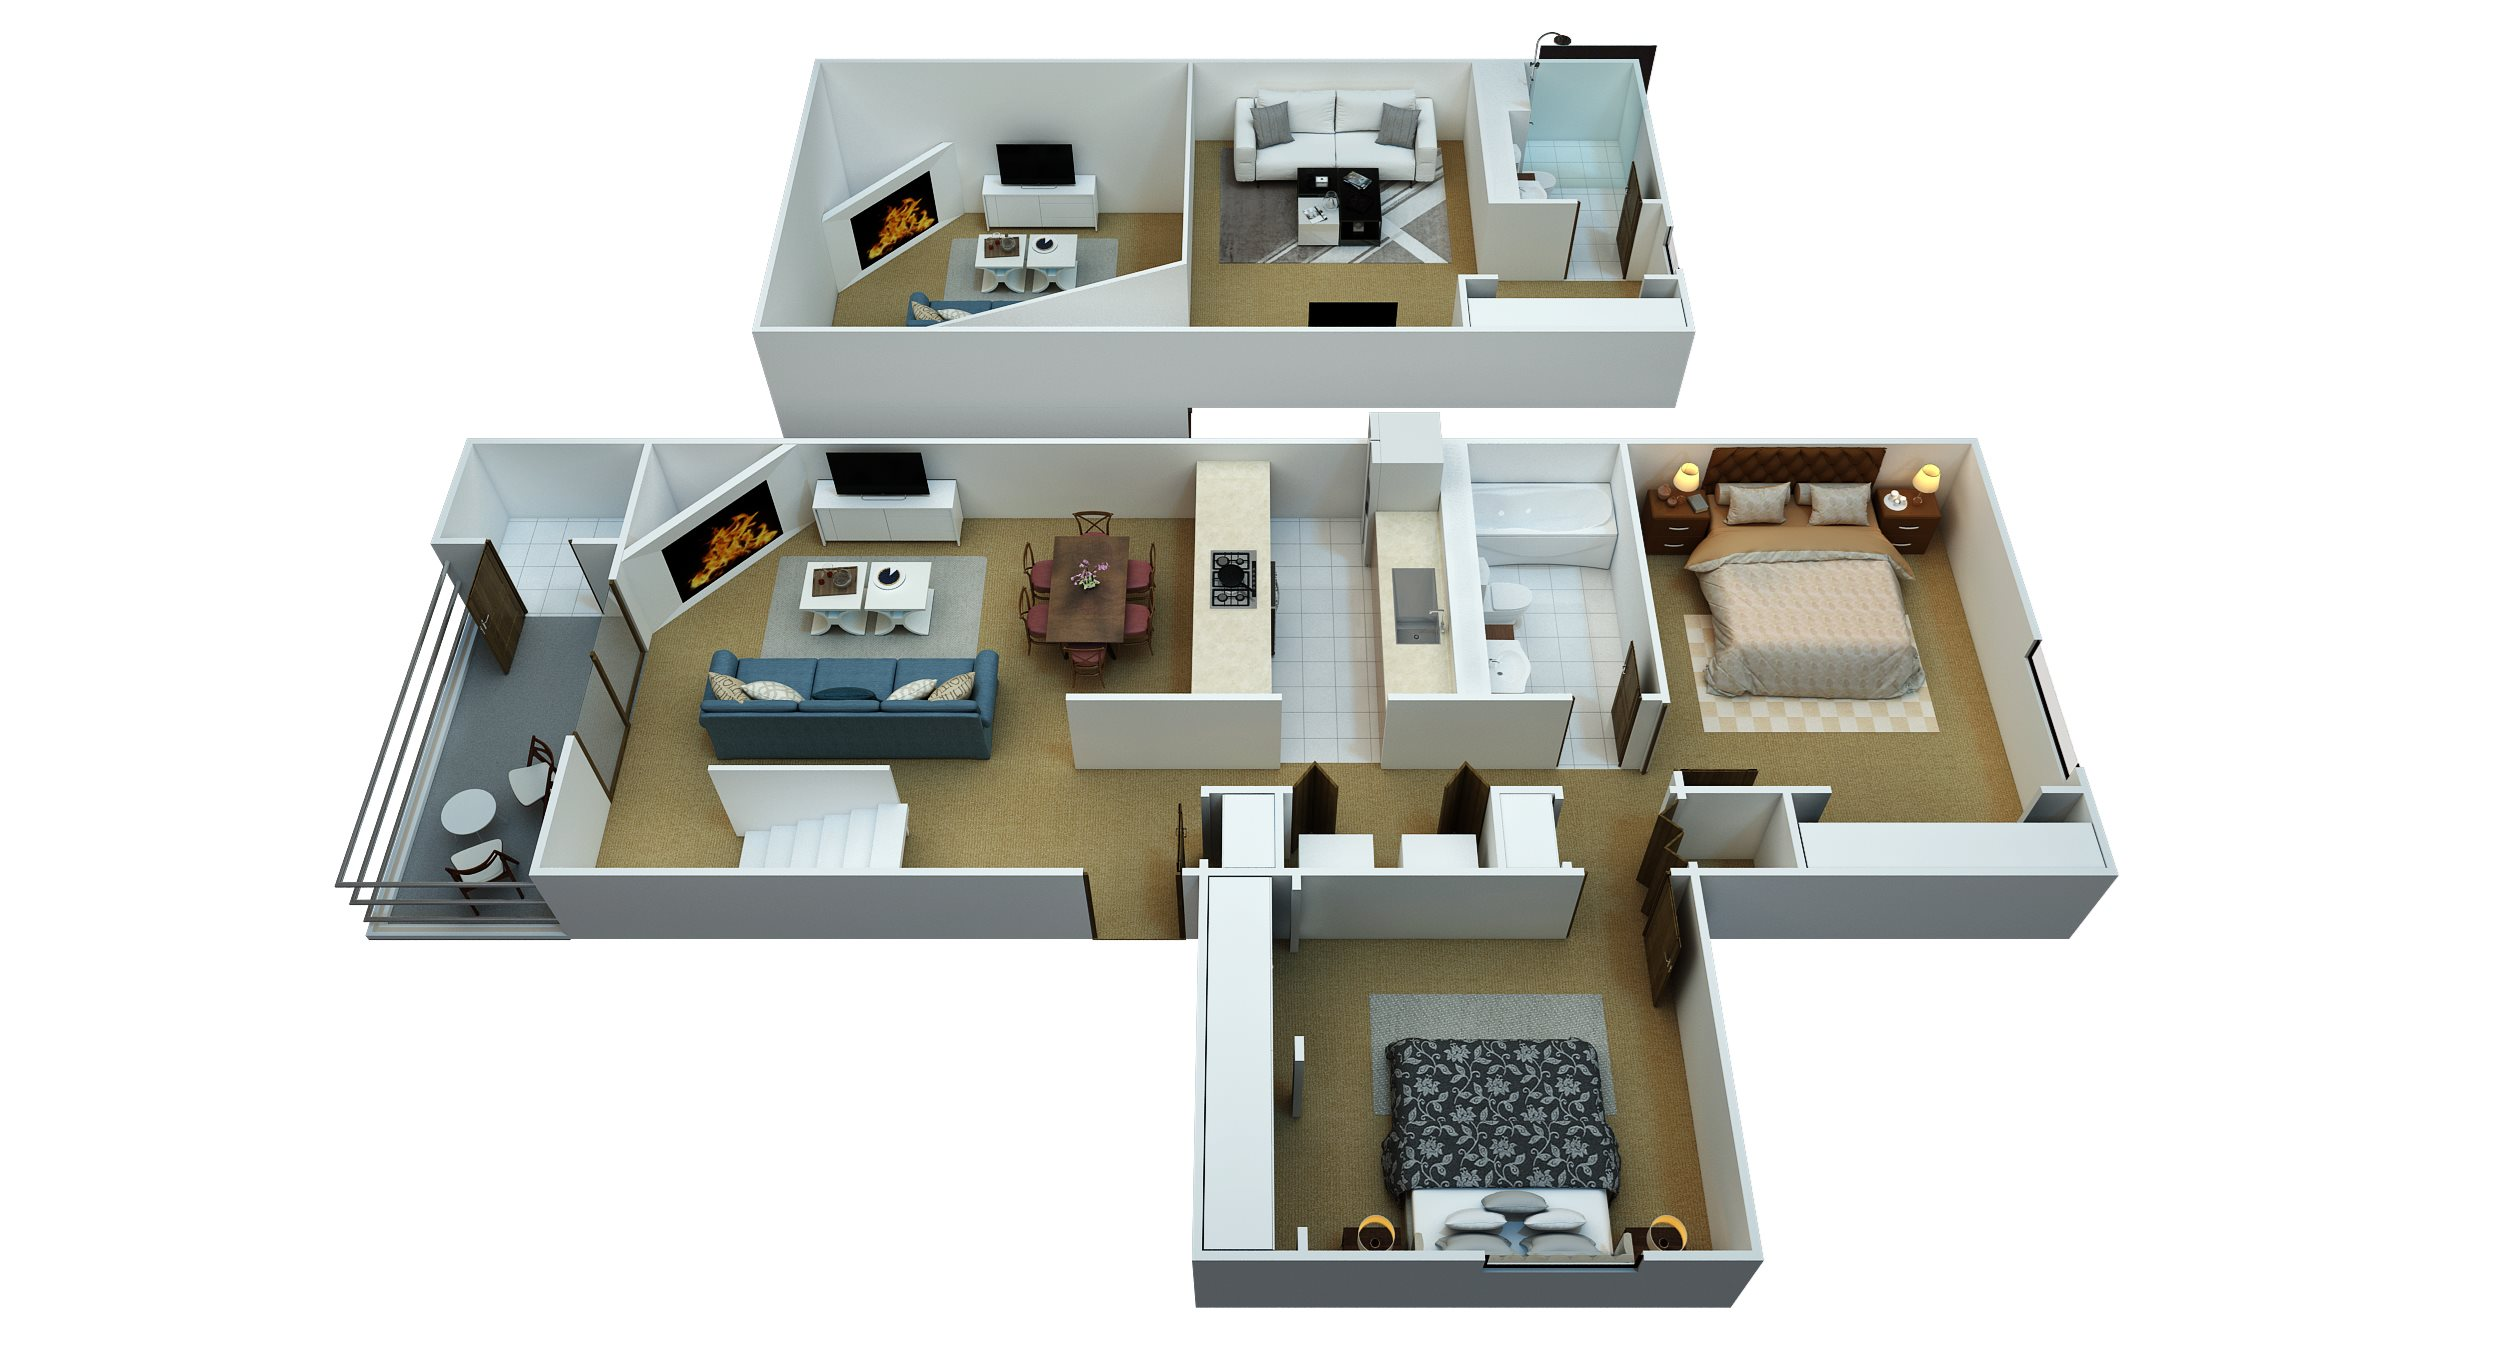 2 Bedroom, 2 Bathroom with Den Floor Plan 5